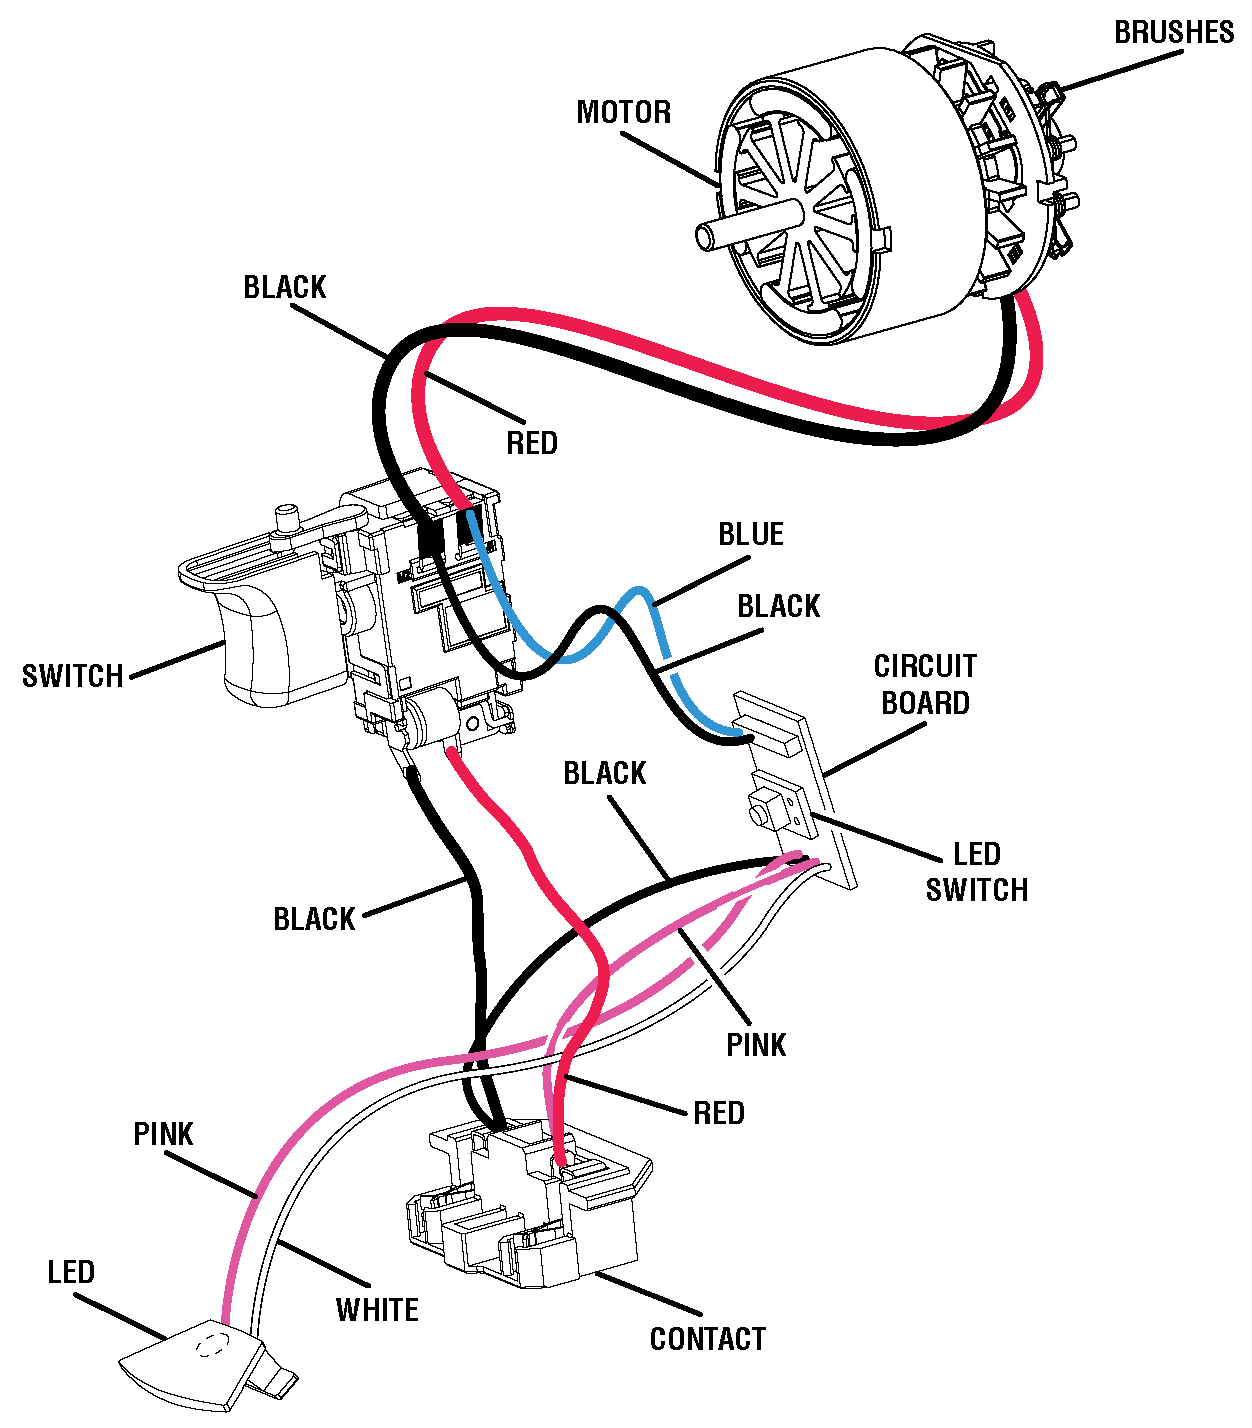 Wiring Diagram Wiring Diagram. Hammer Drill Parts